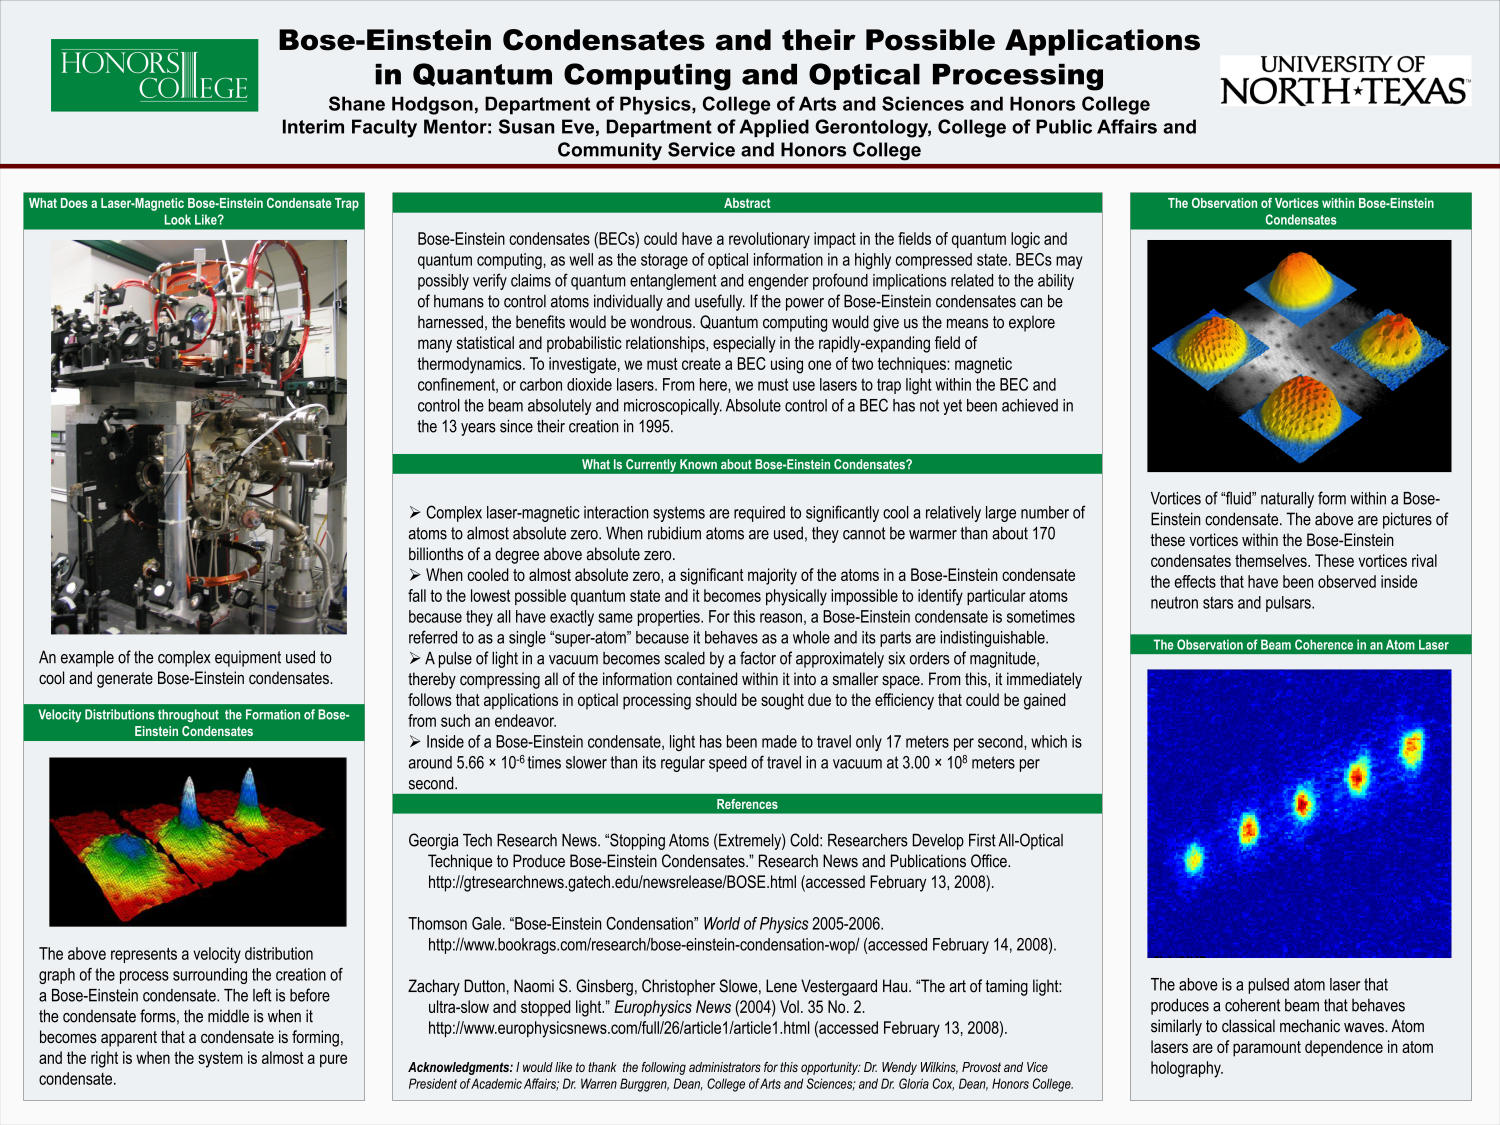 Bose-Einstein Condensates and their Possible Applications in